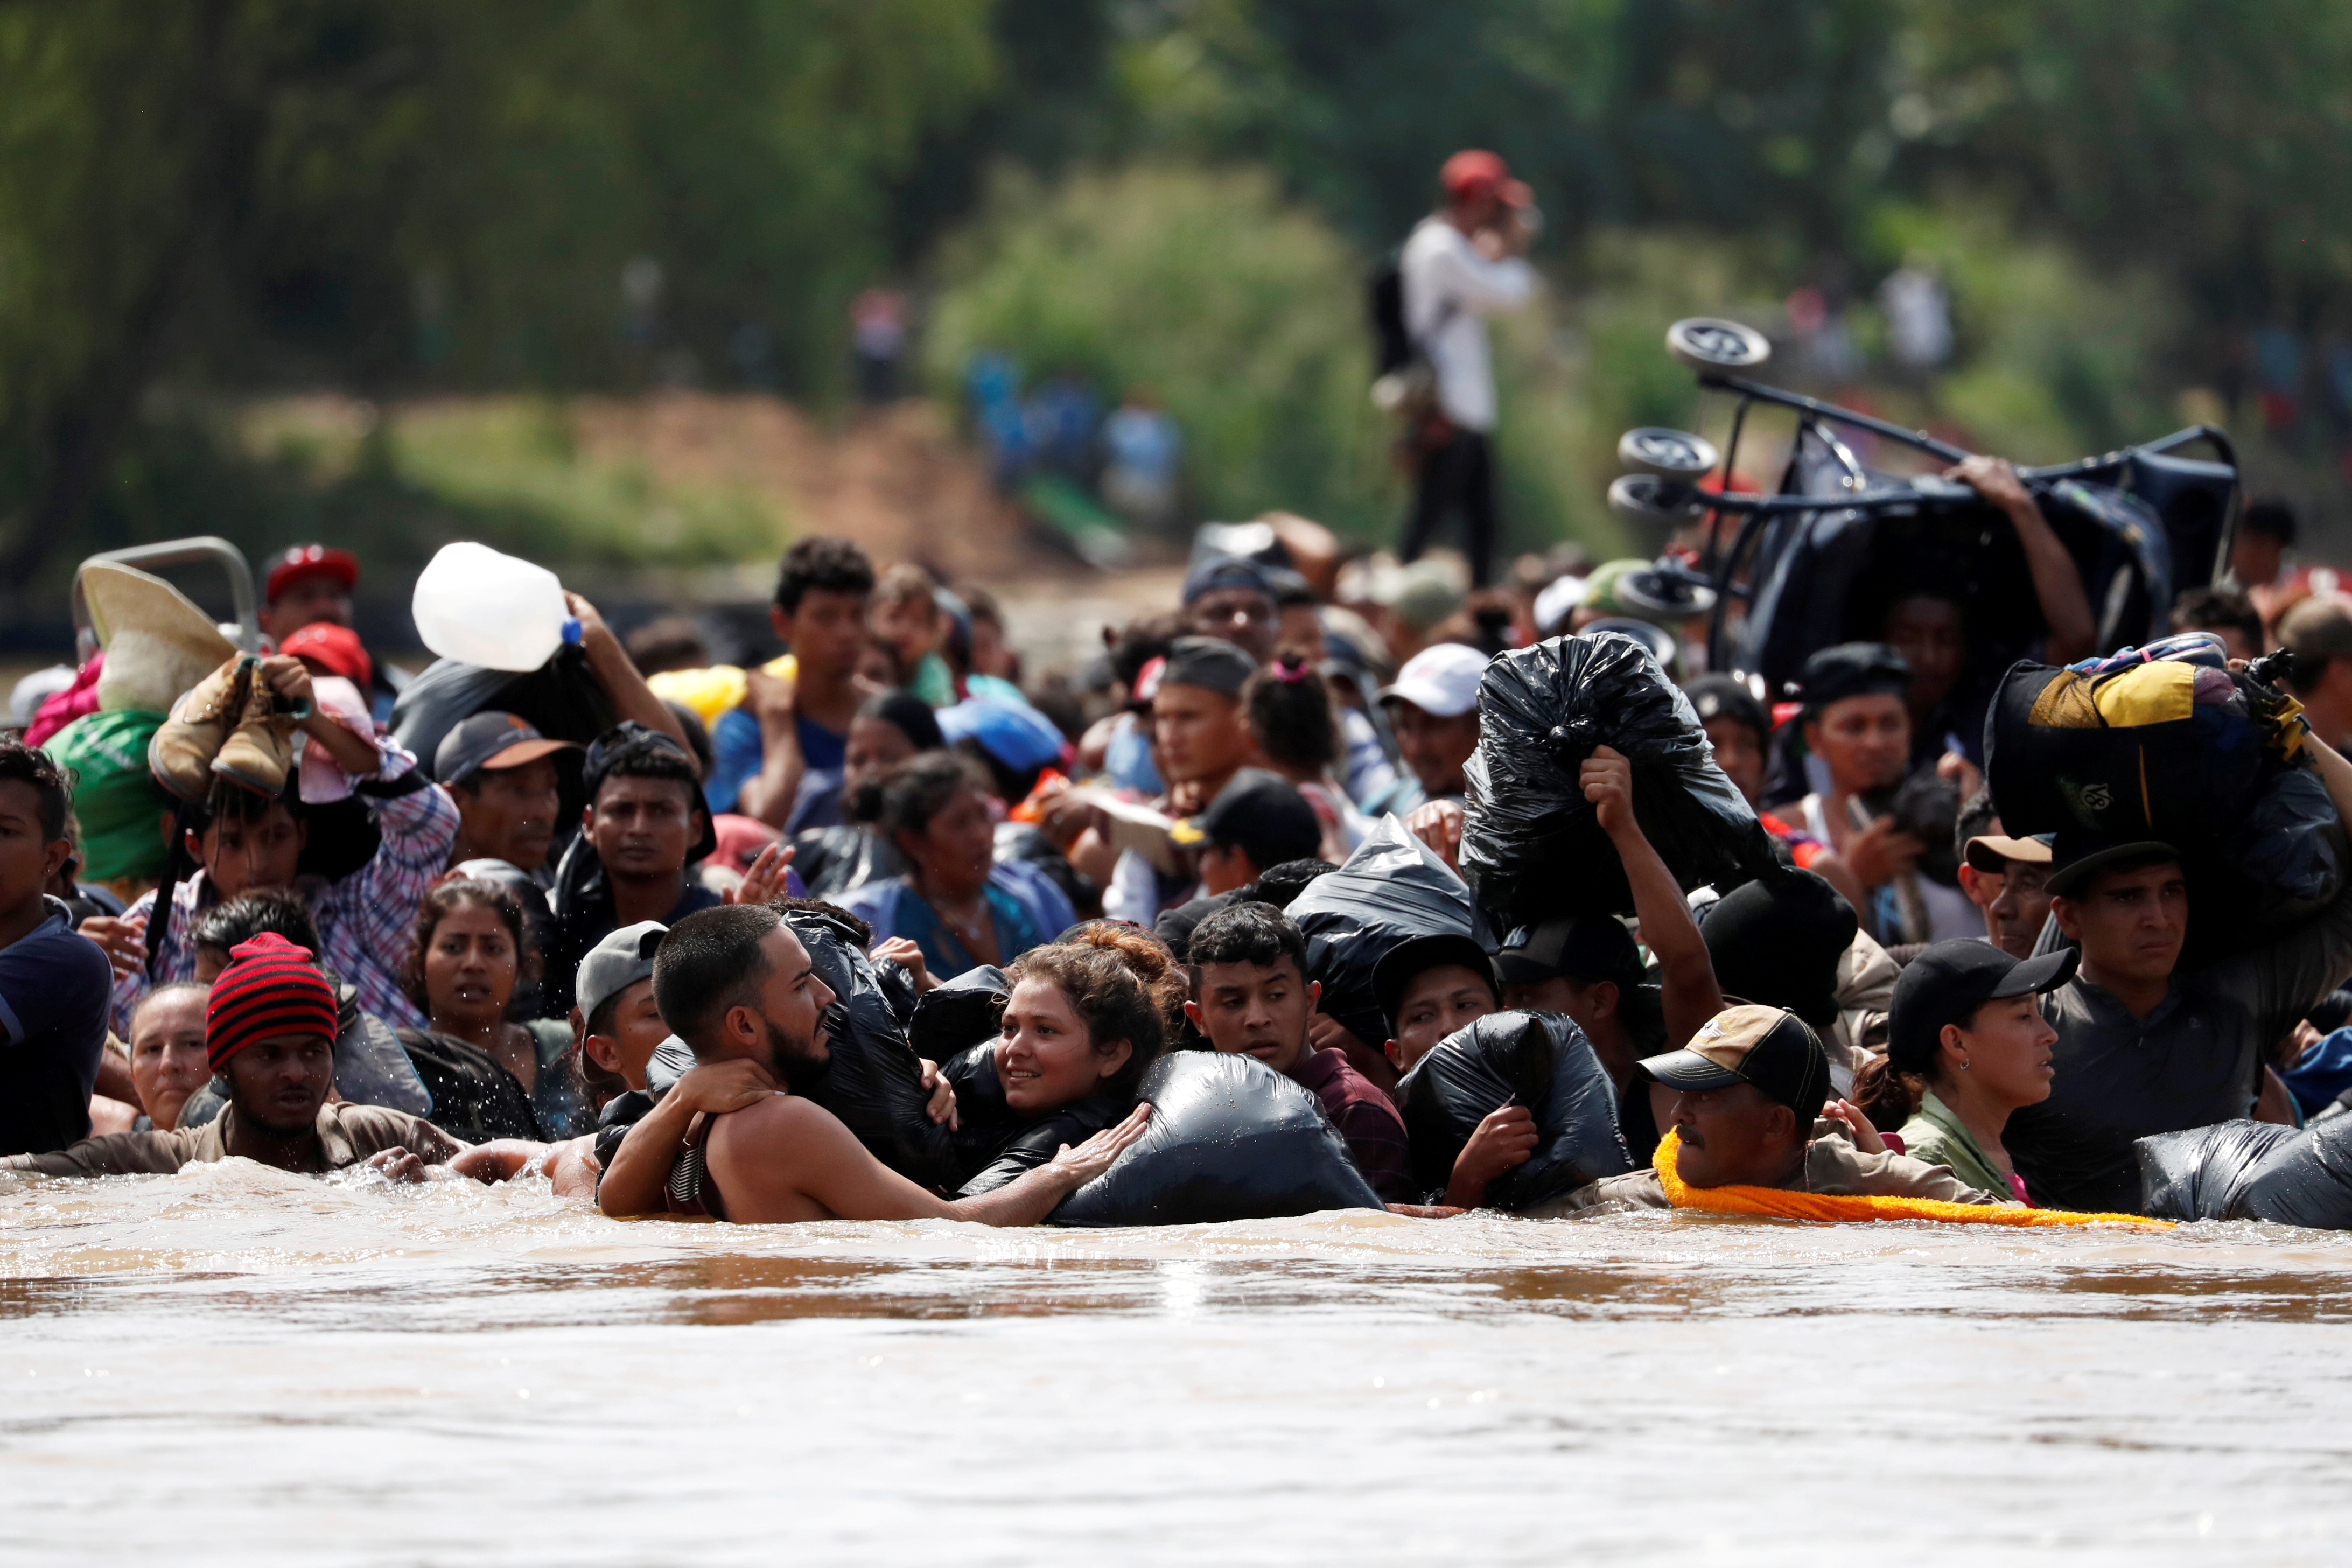 Central American migrants walk through the Suchiate river, the natural border between Guatemala and Mexico, in their bid to reach the U.S., as seen from Tecun Uman, Guatemala October 29, 2018. REUTERS/Carlos Garcia Rawlins